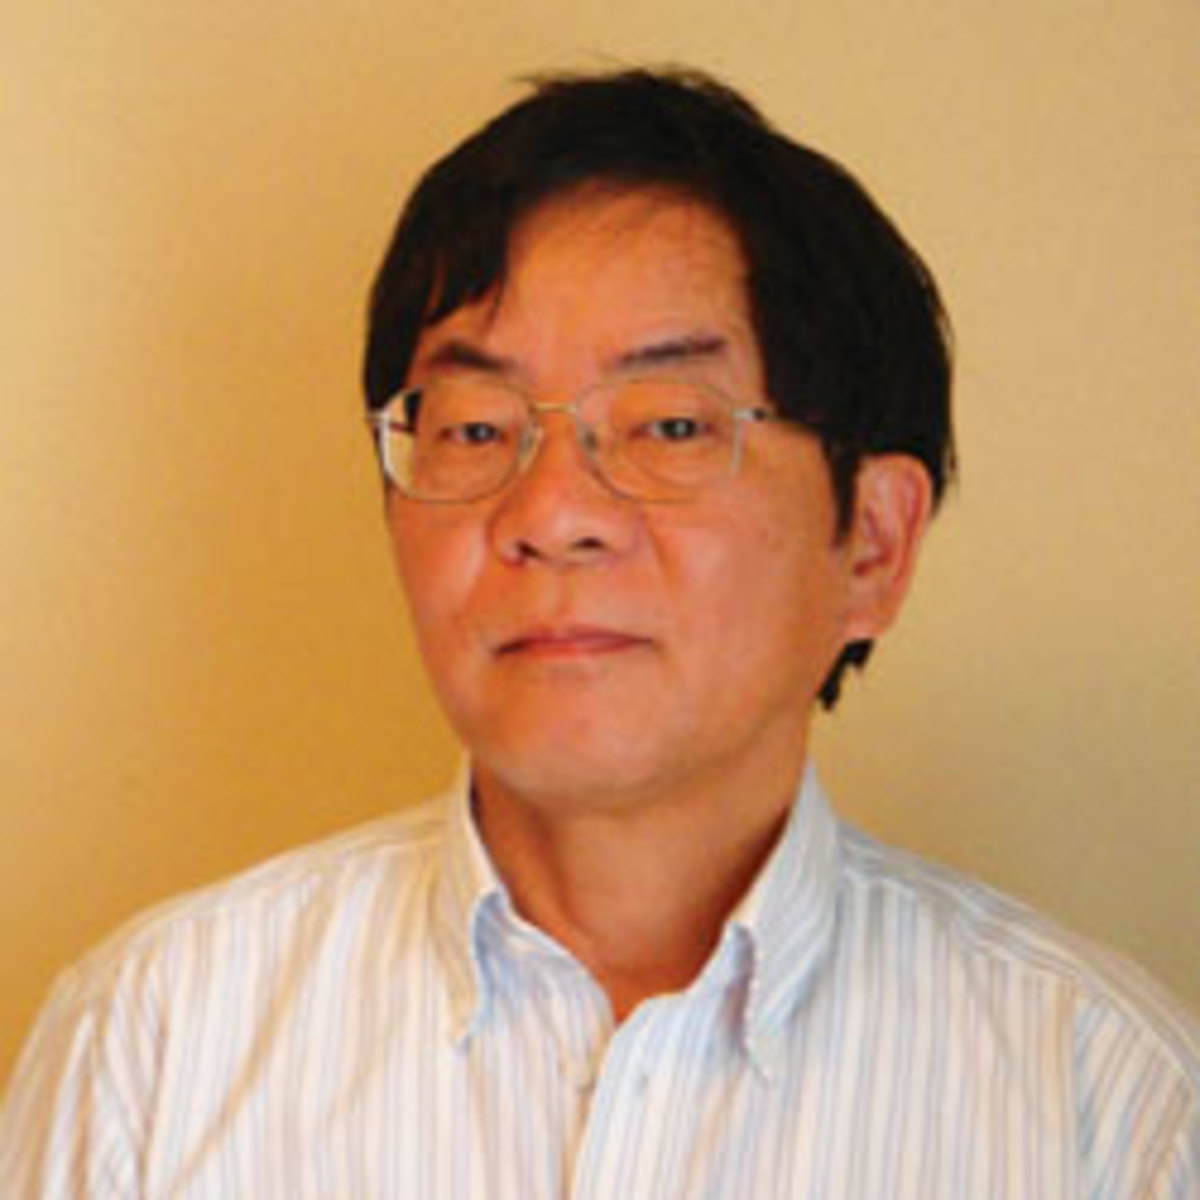 Takashi Ohsumi of the Central Research Institute of the Electric Power Industry.